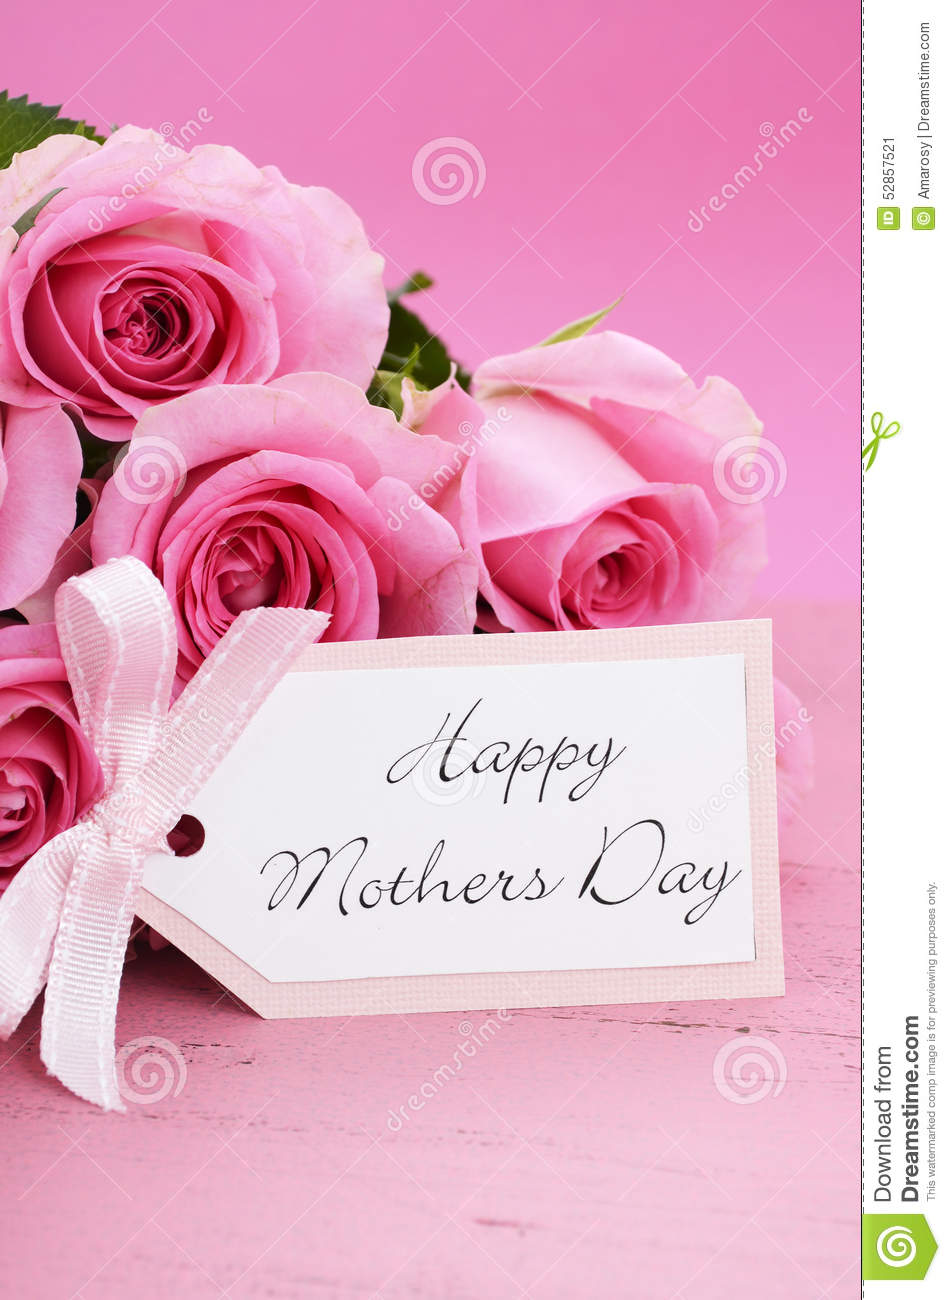 Happy Mothers Day Pink Roses Background Stock Image Image Of